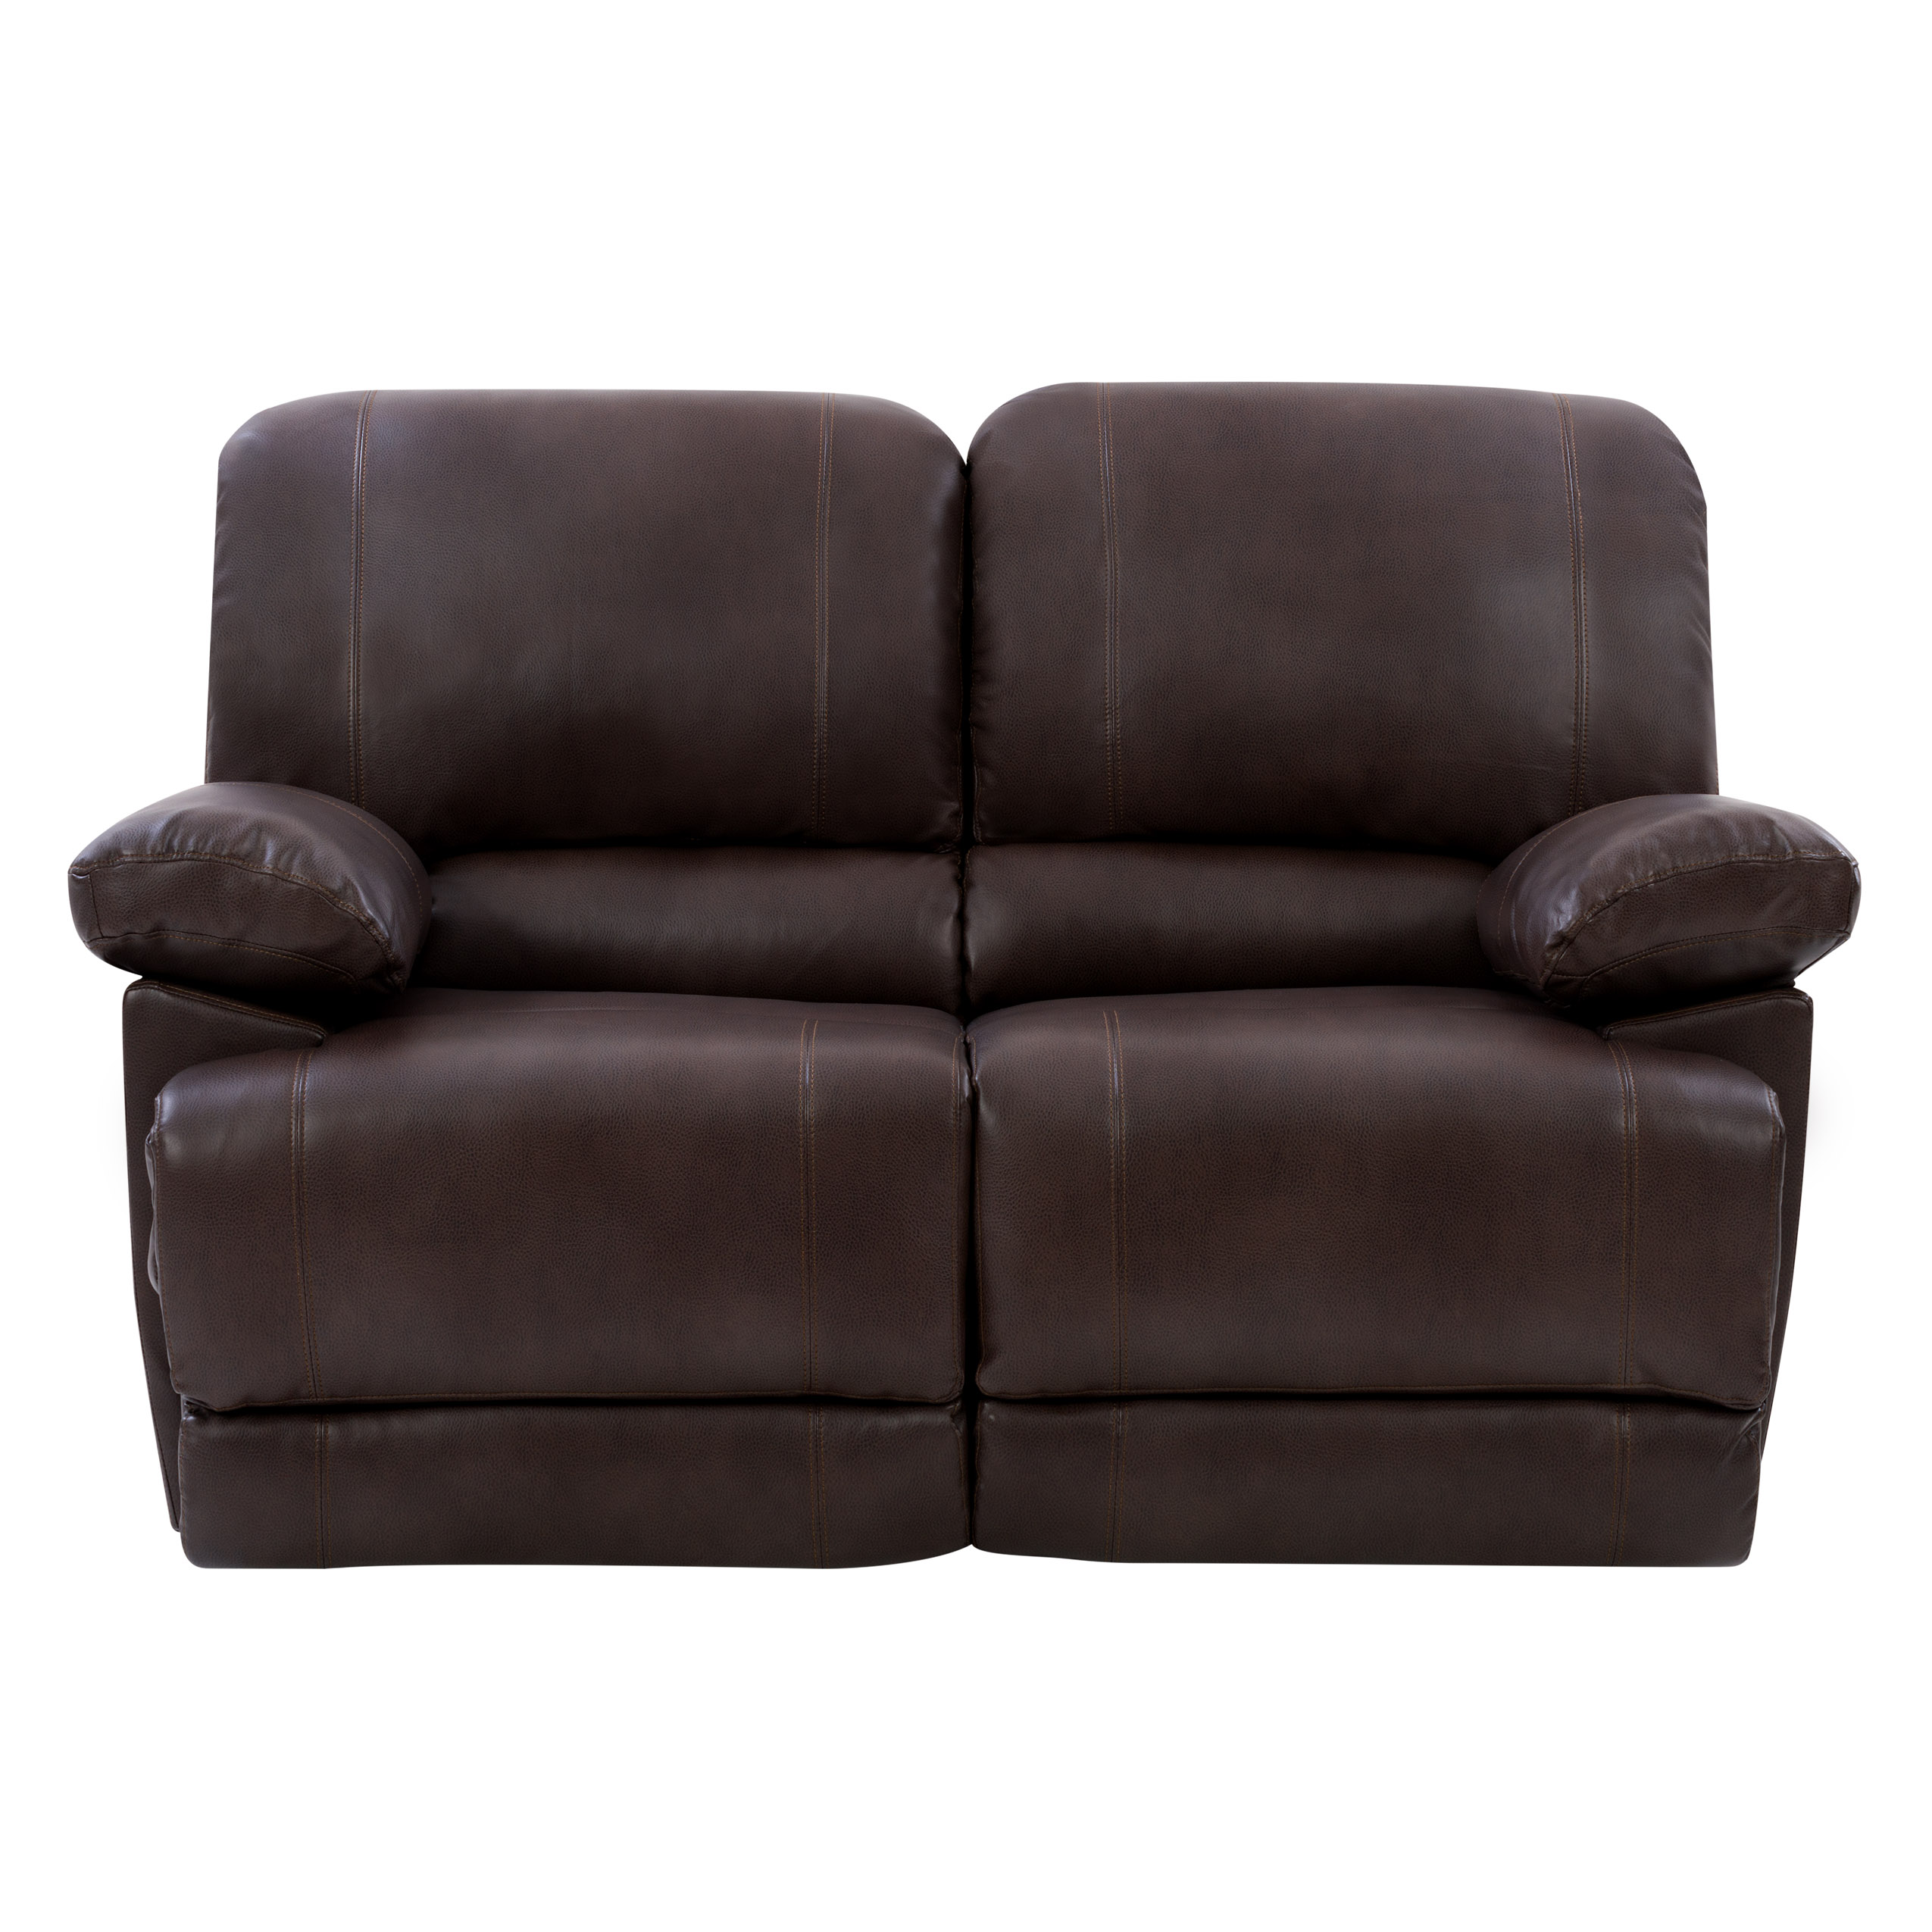 Image of CorLiving Plush Power Reclining Chocolate Brown Bonded Leather Loveseat with USB Port